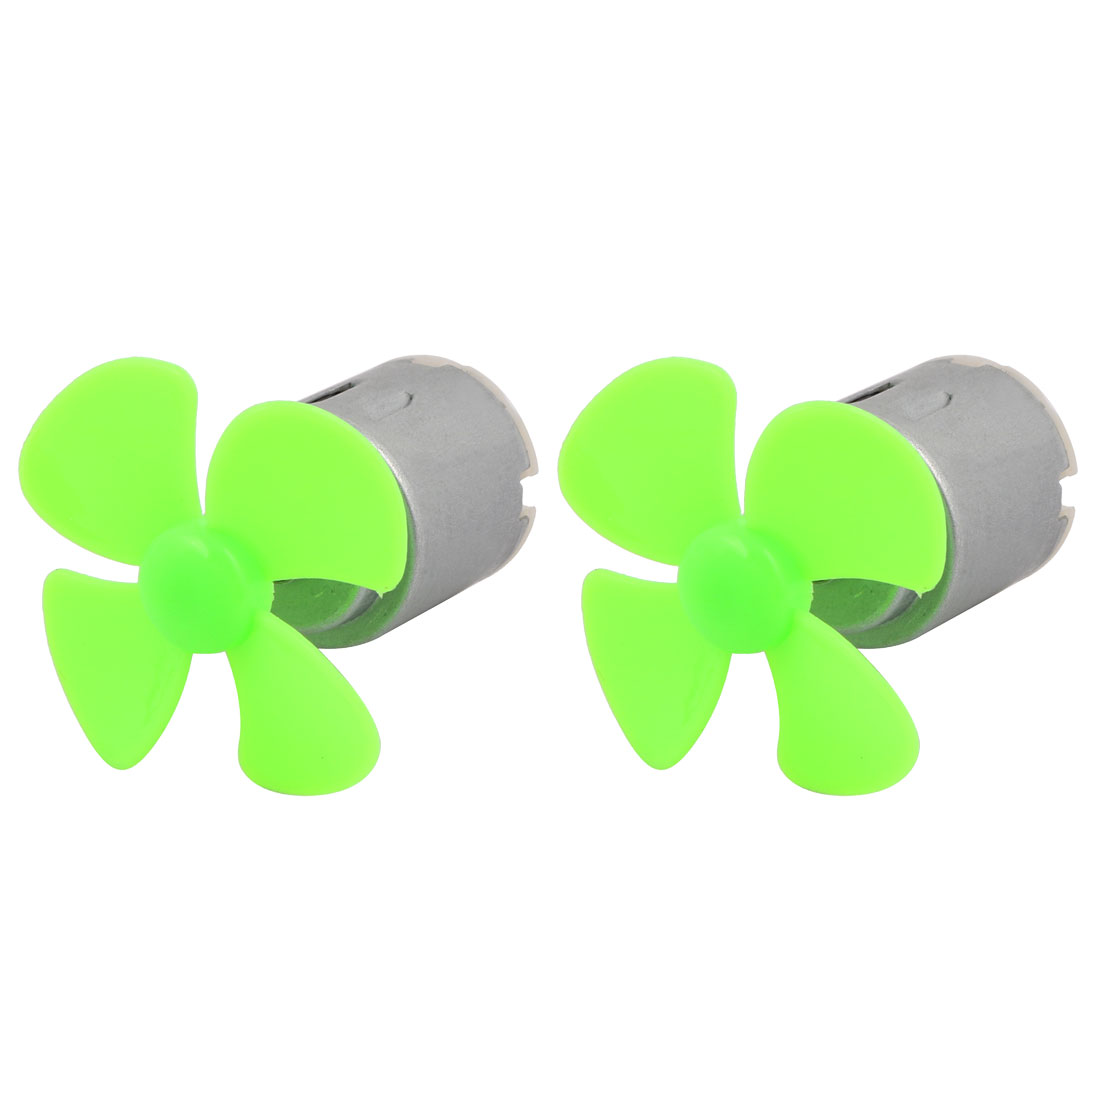 2Pcs DC 5V 7000RPM Large Torque Motor 4-Vane 40mm Dia Propeller Green for RC Model